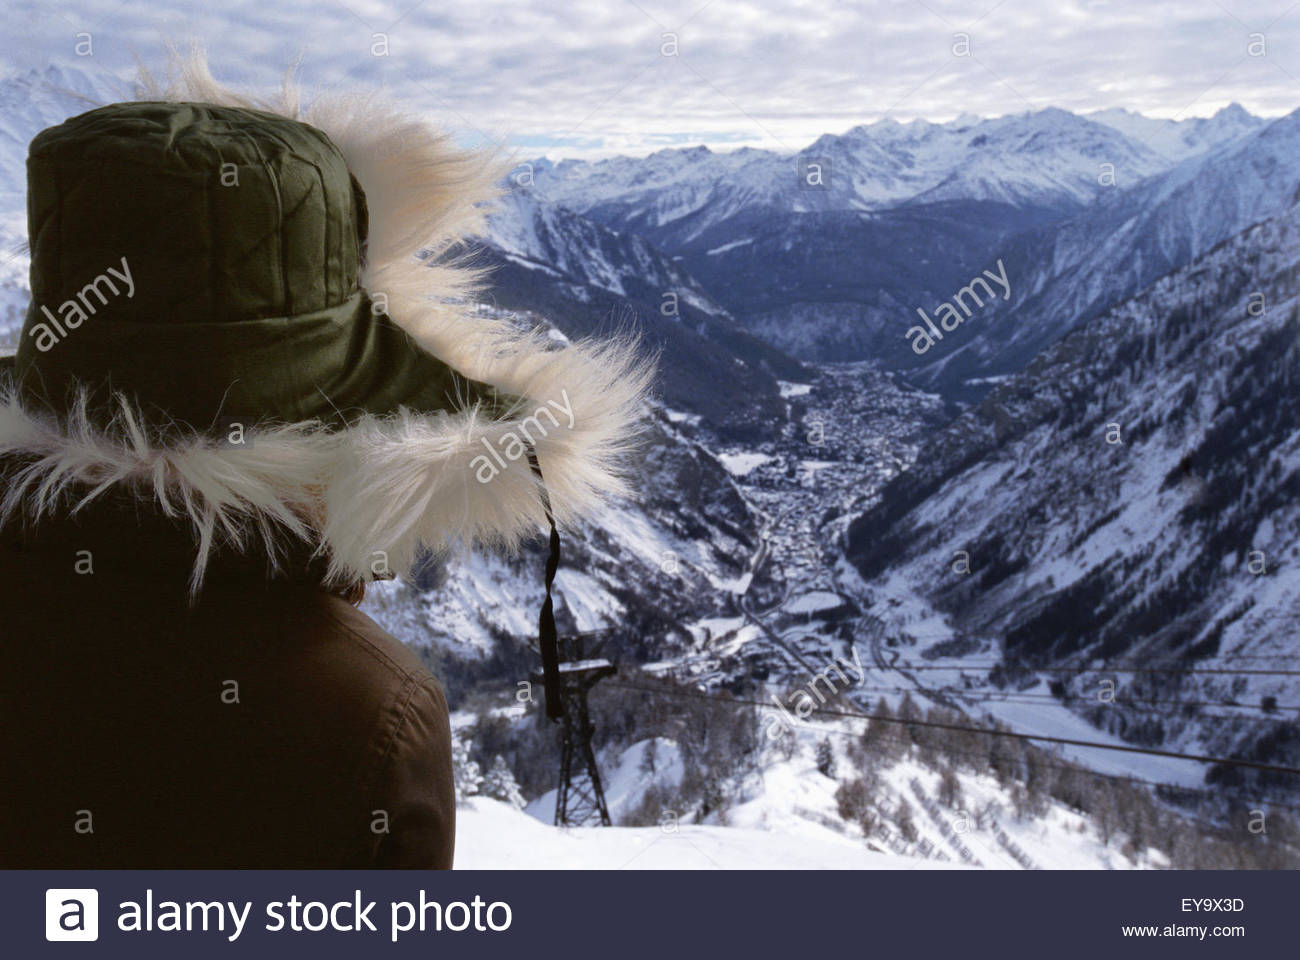 Woman In Fur Trimmed Hat And Snowcapped Mountains - Stock Image